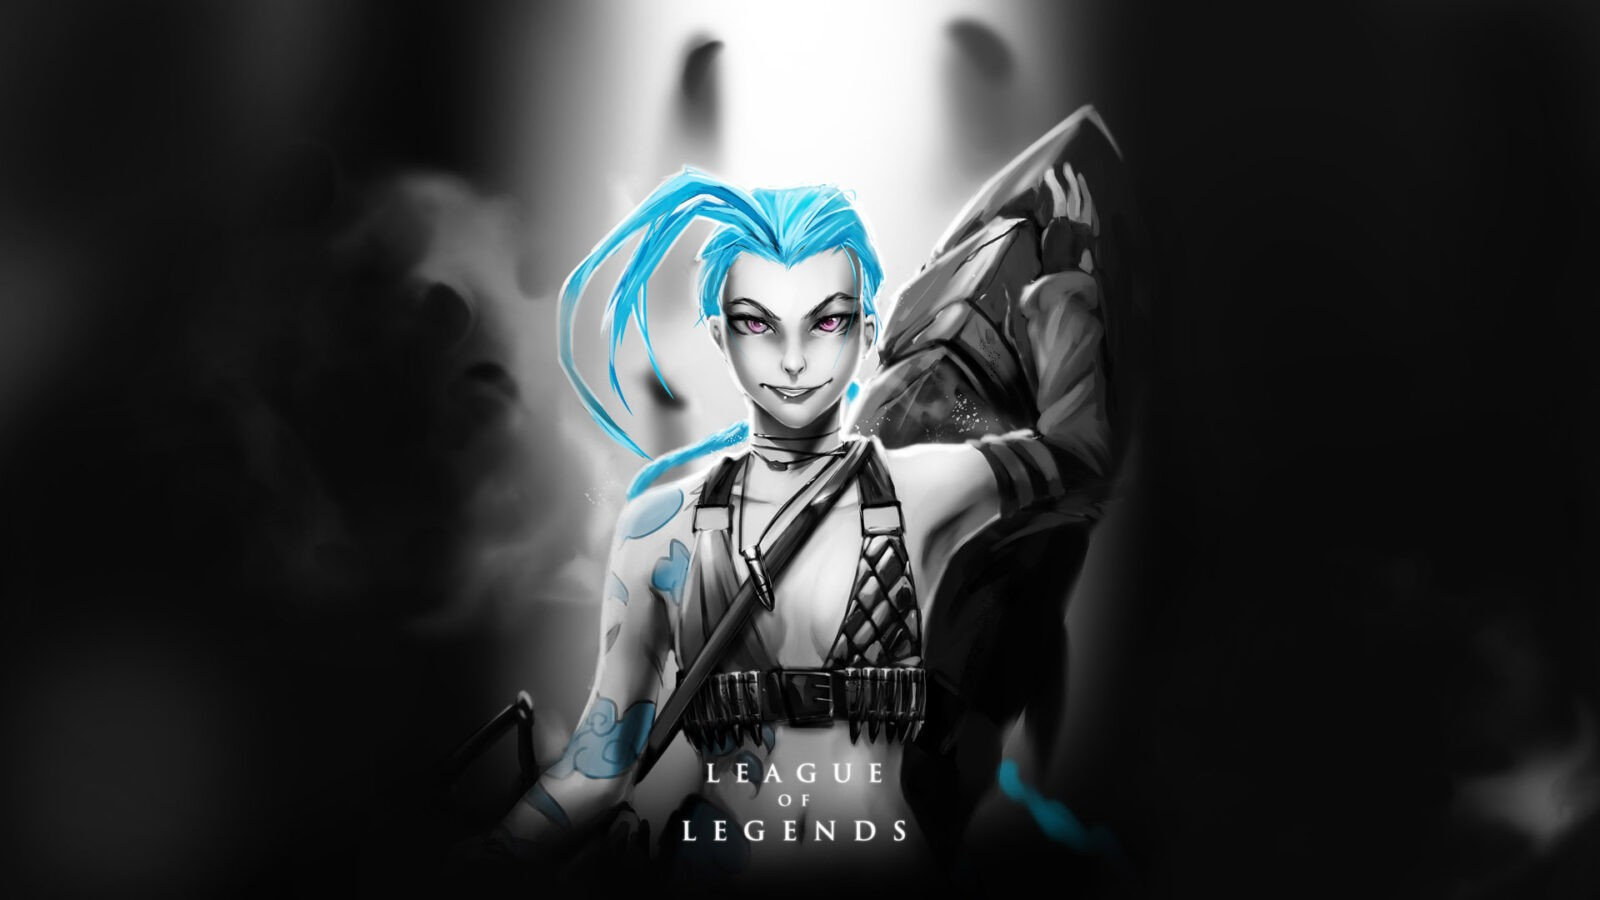 League of Legends Jinx dark HD